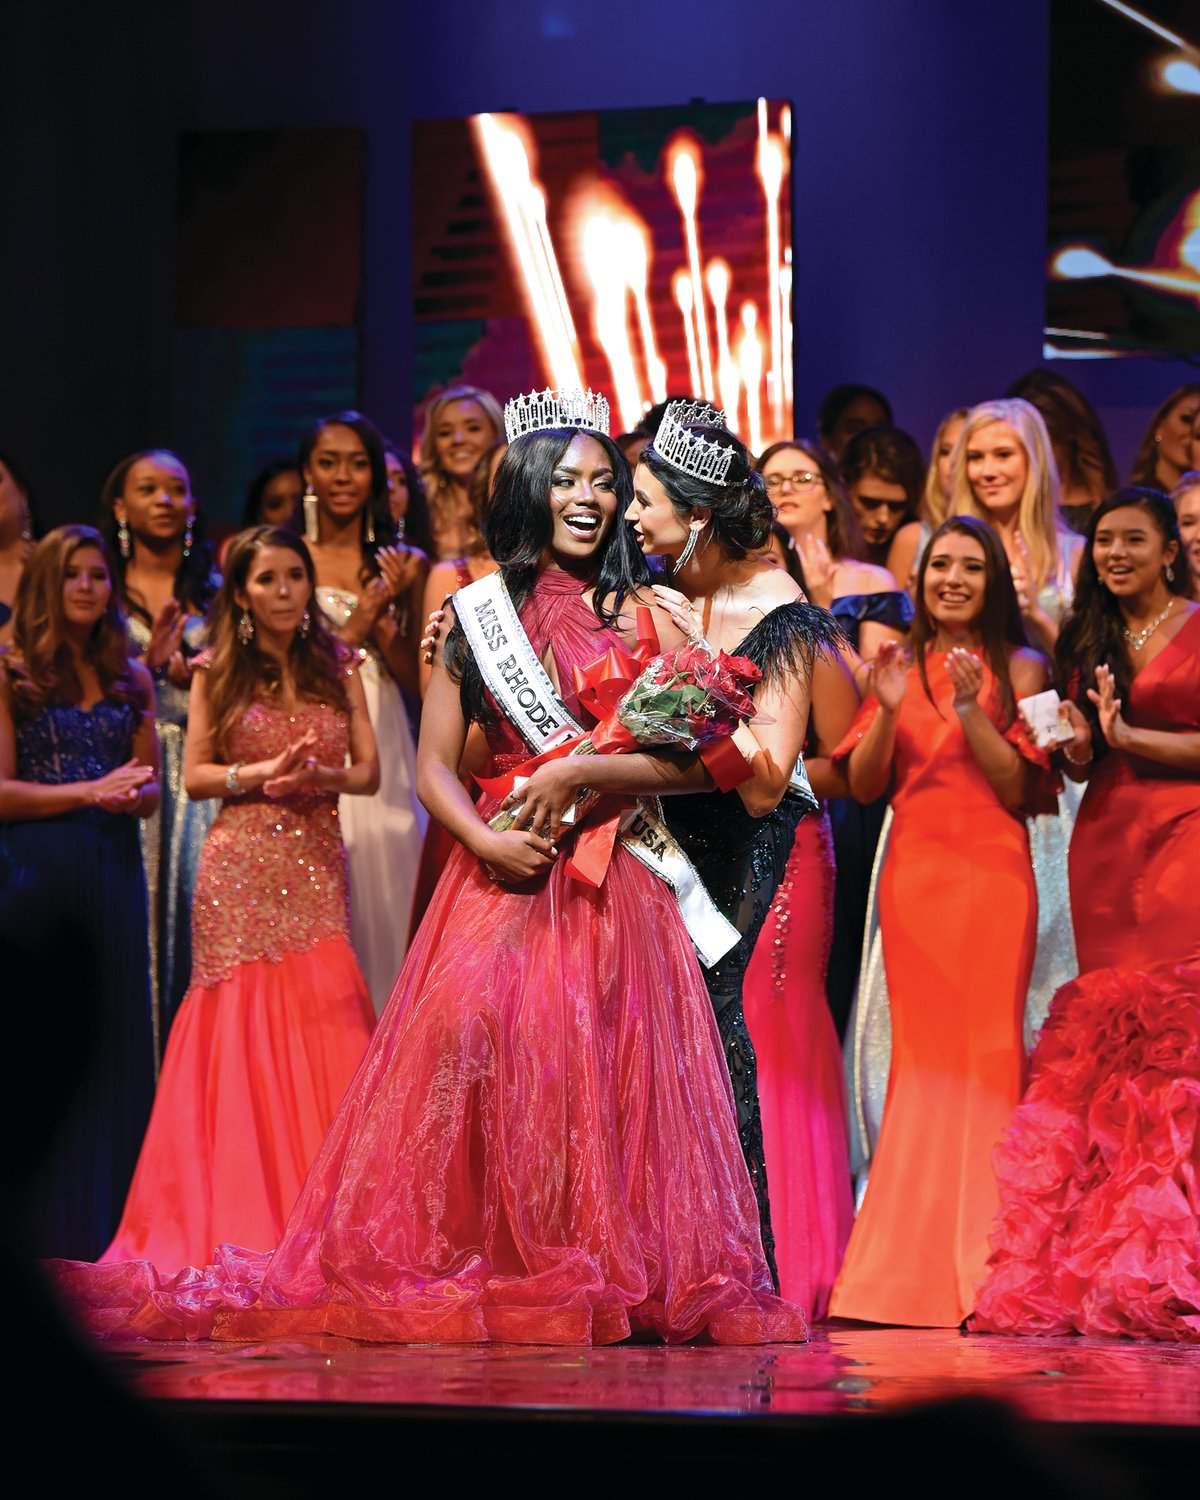 Jonét Nichelle after being crowned Miss Rhode Island USA.